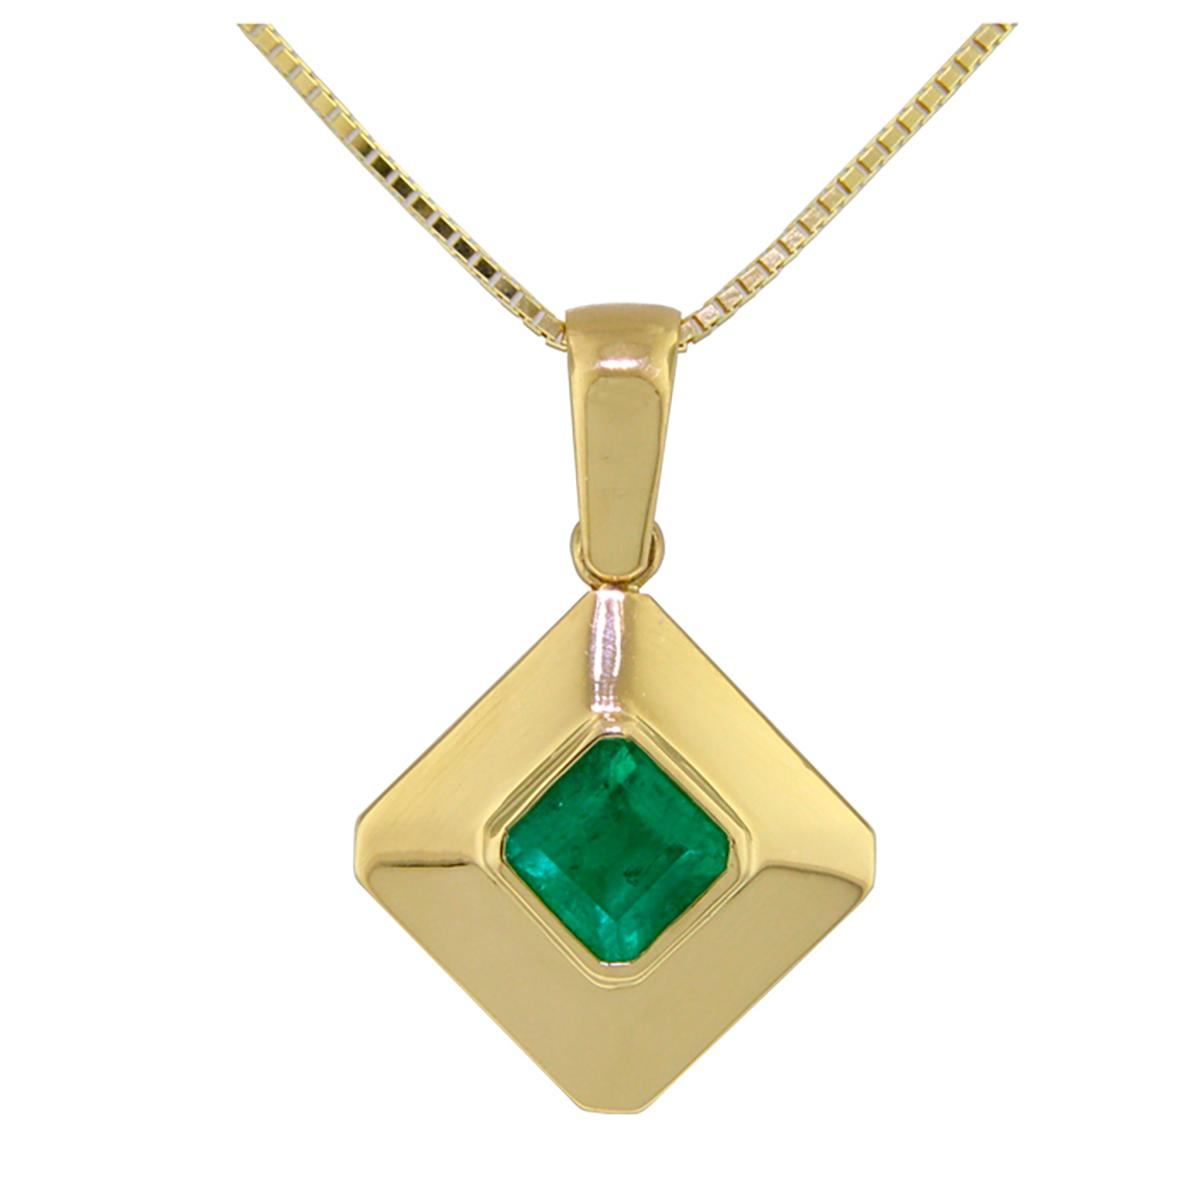 18k-gold-bezel-setting-solitaire-pendant-with-square-natural-emerald